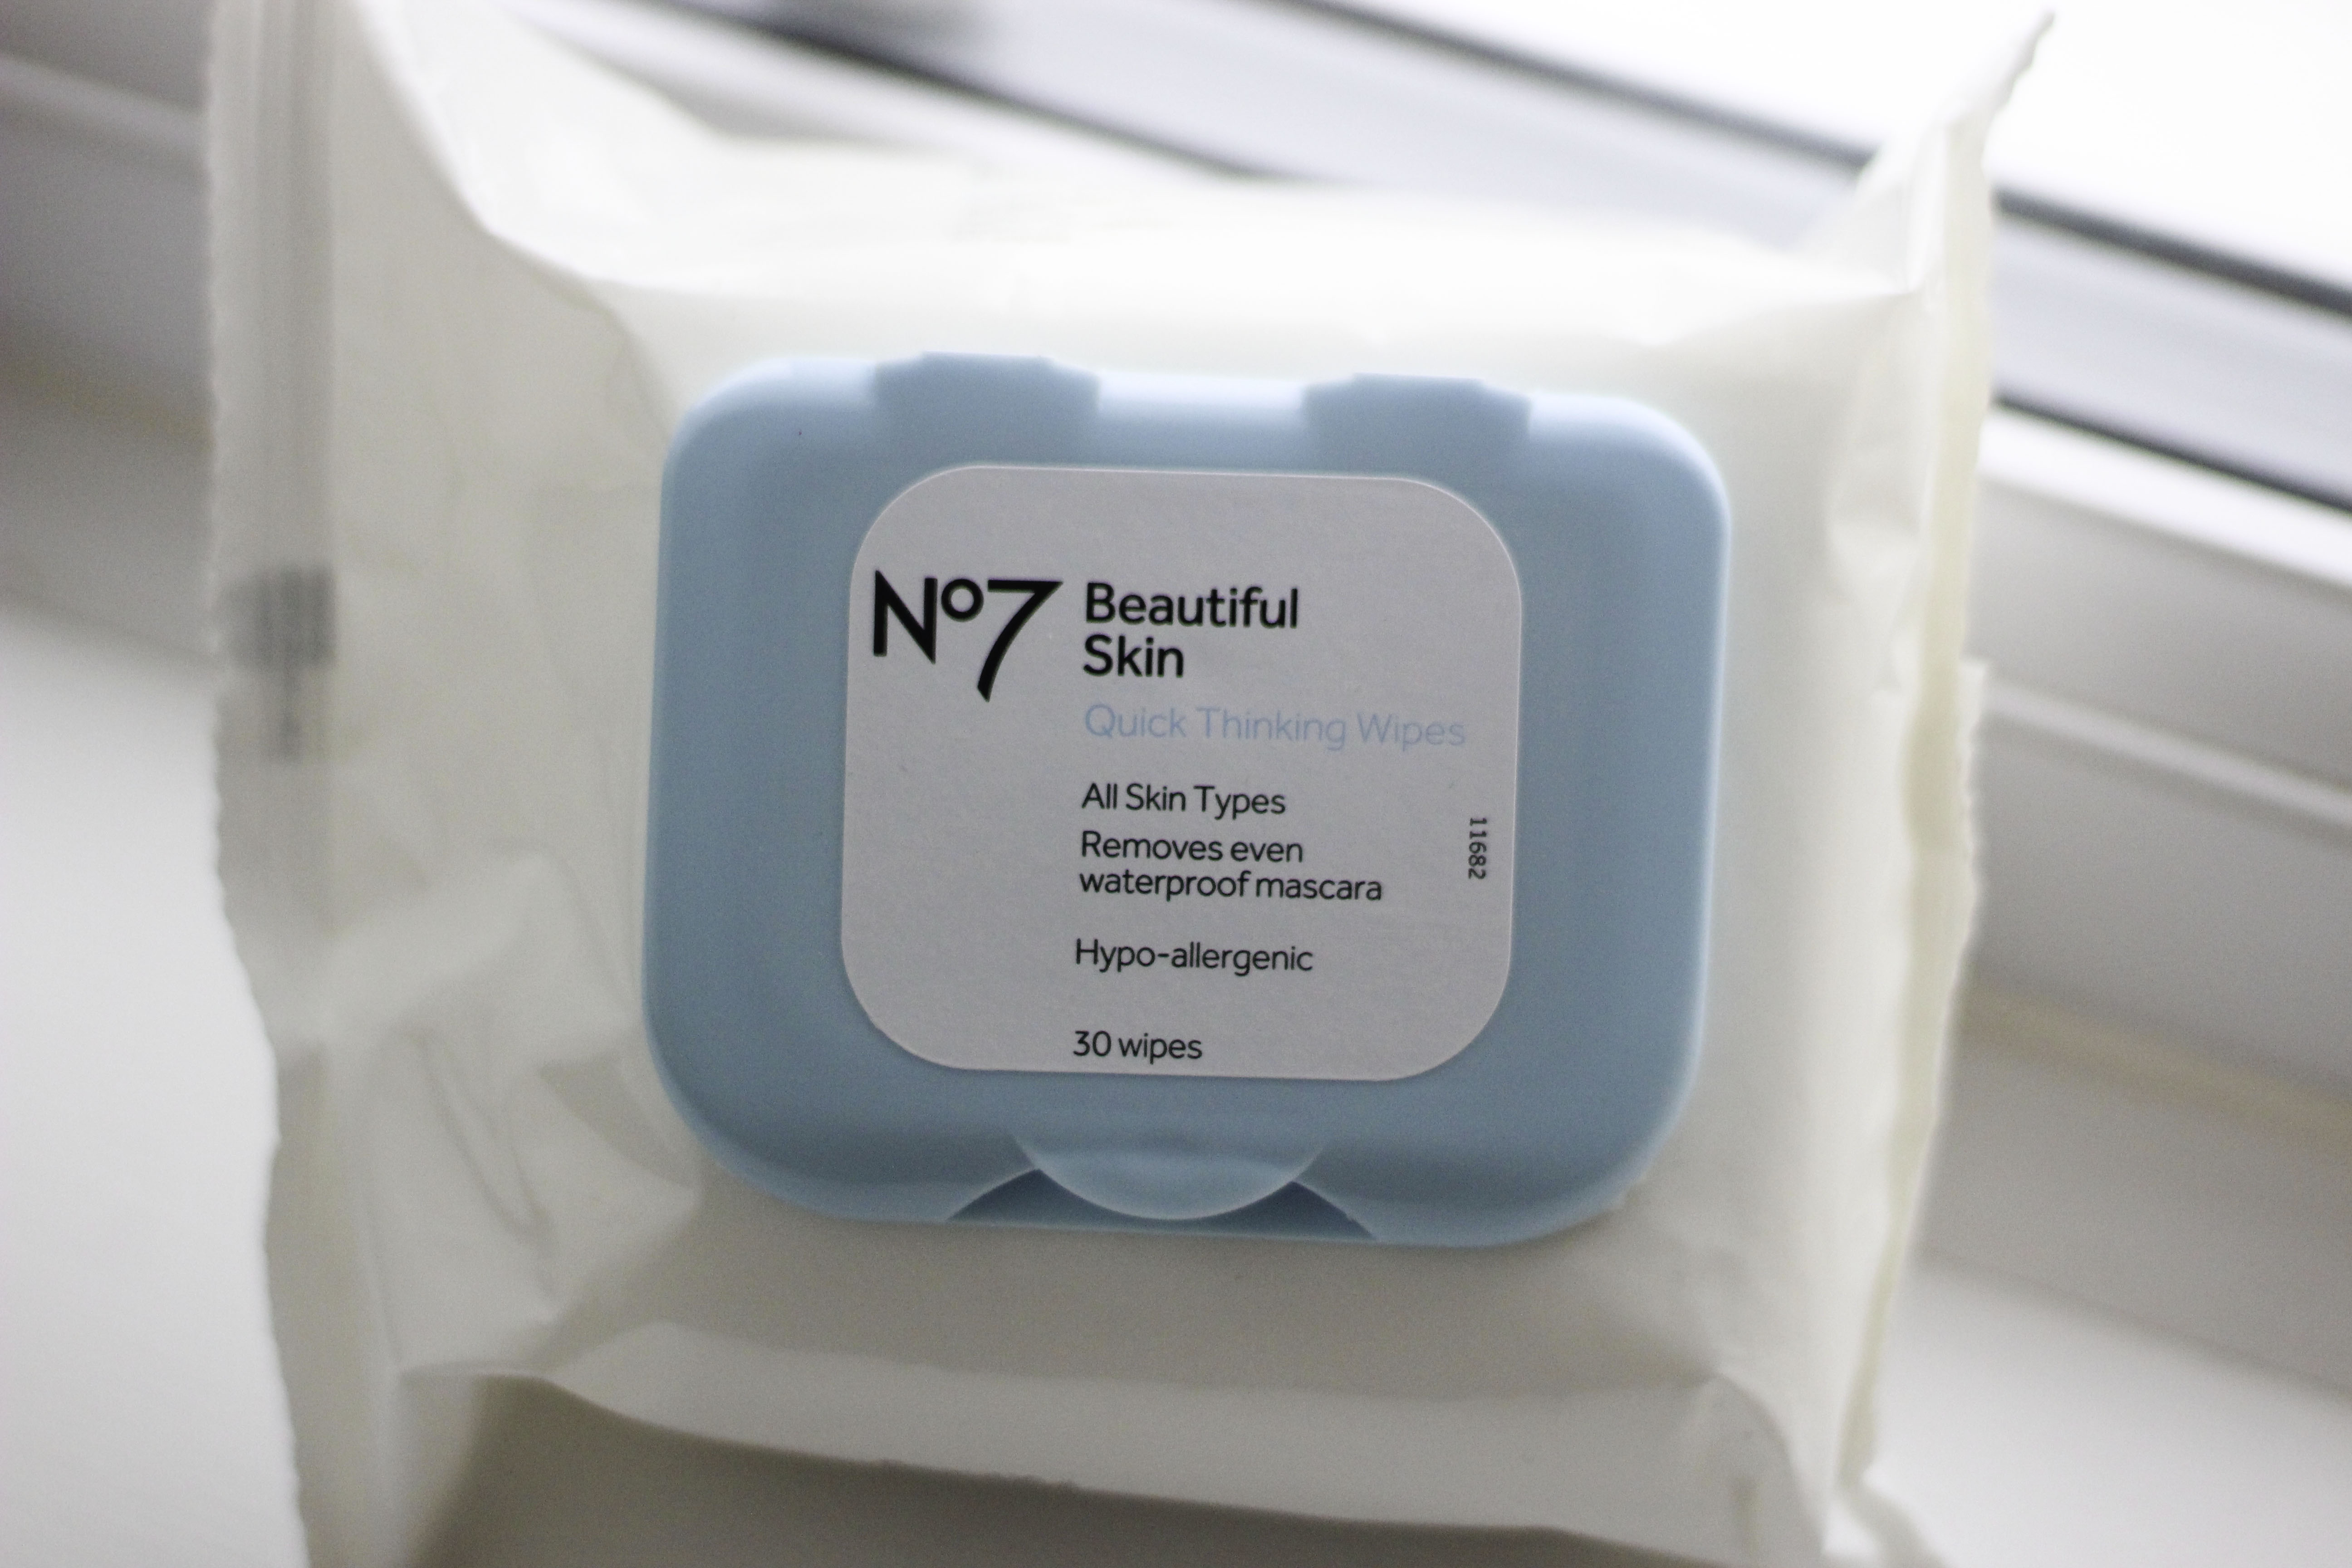 No 7 face wipes